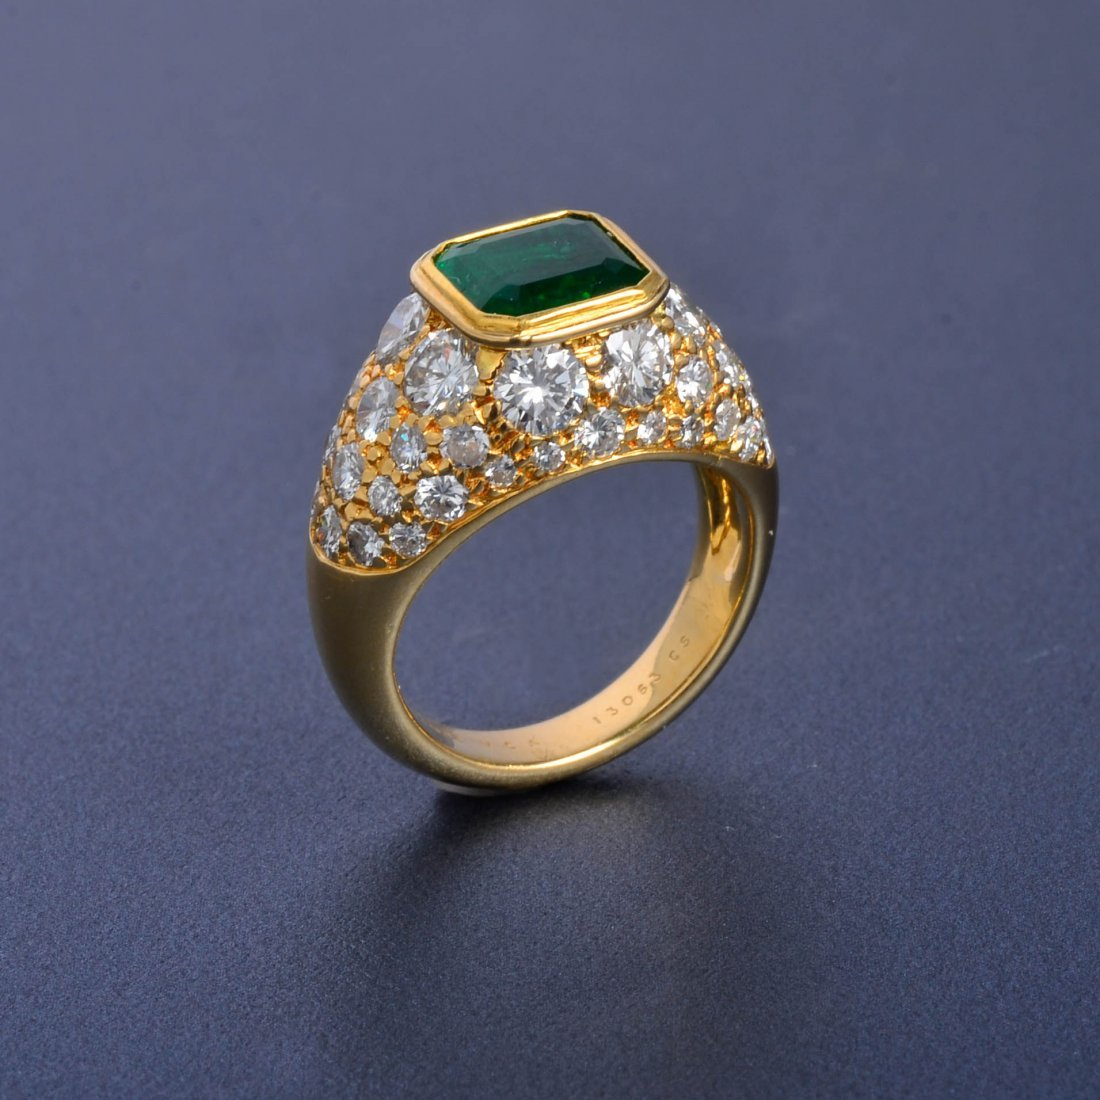 19: VCA Emerald and Diamond Ring